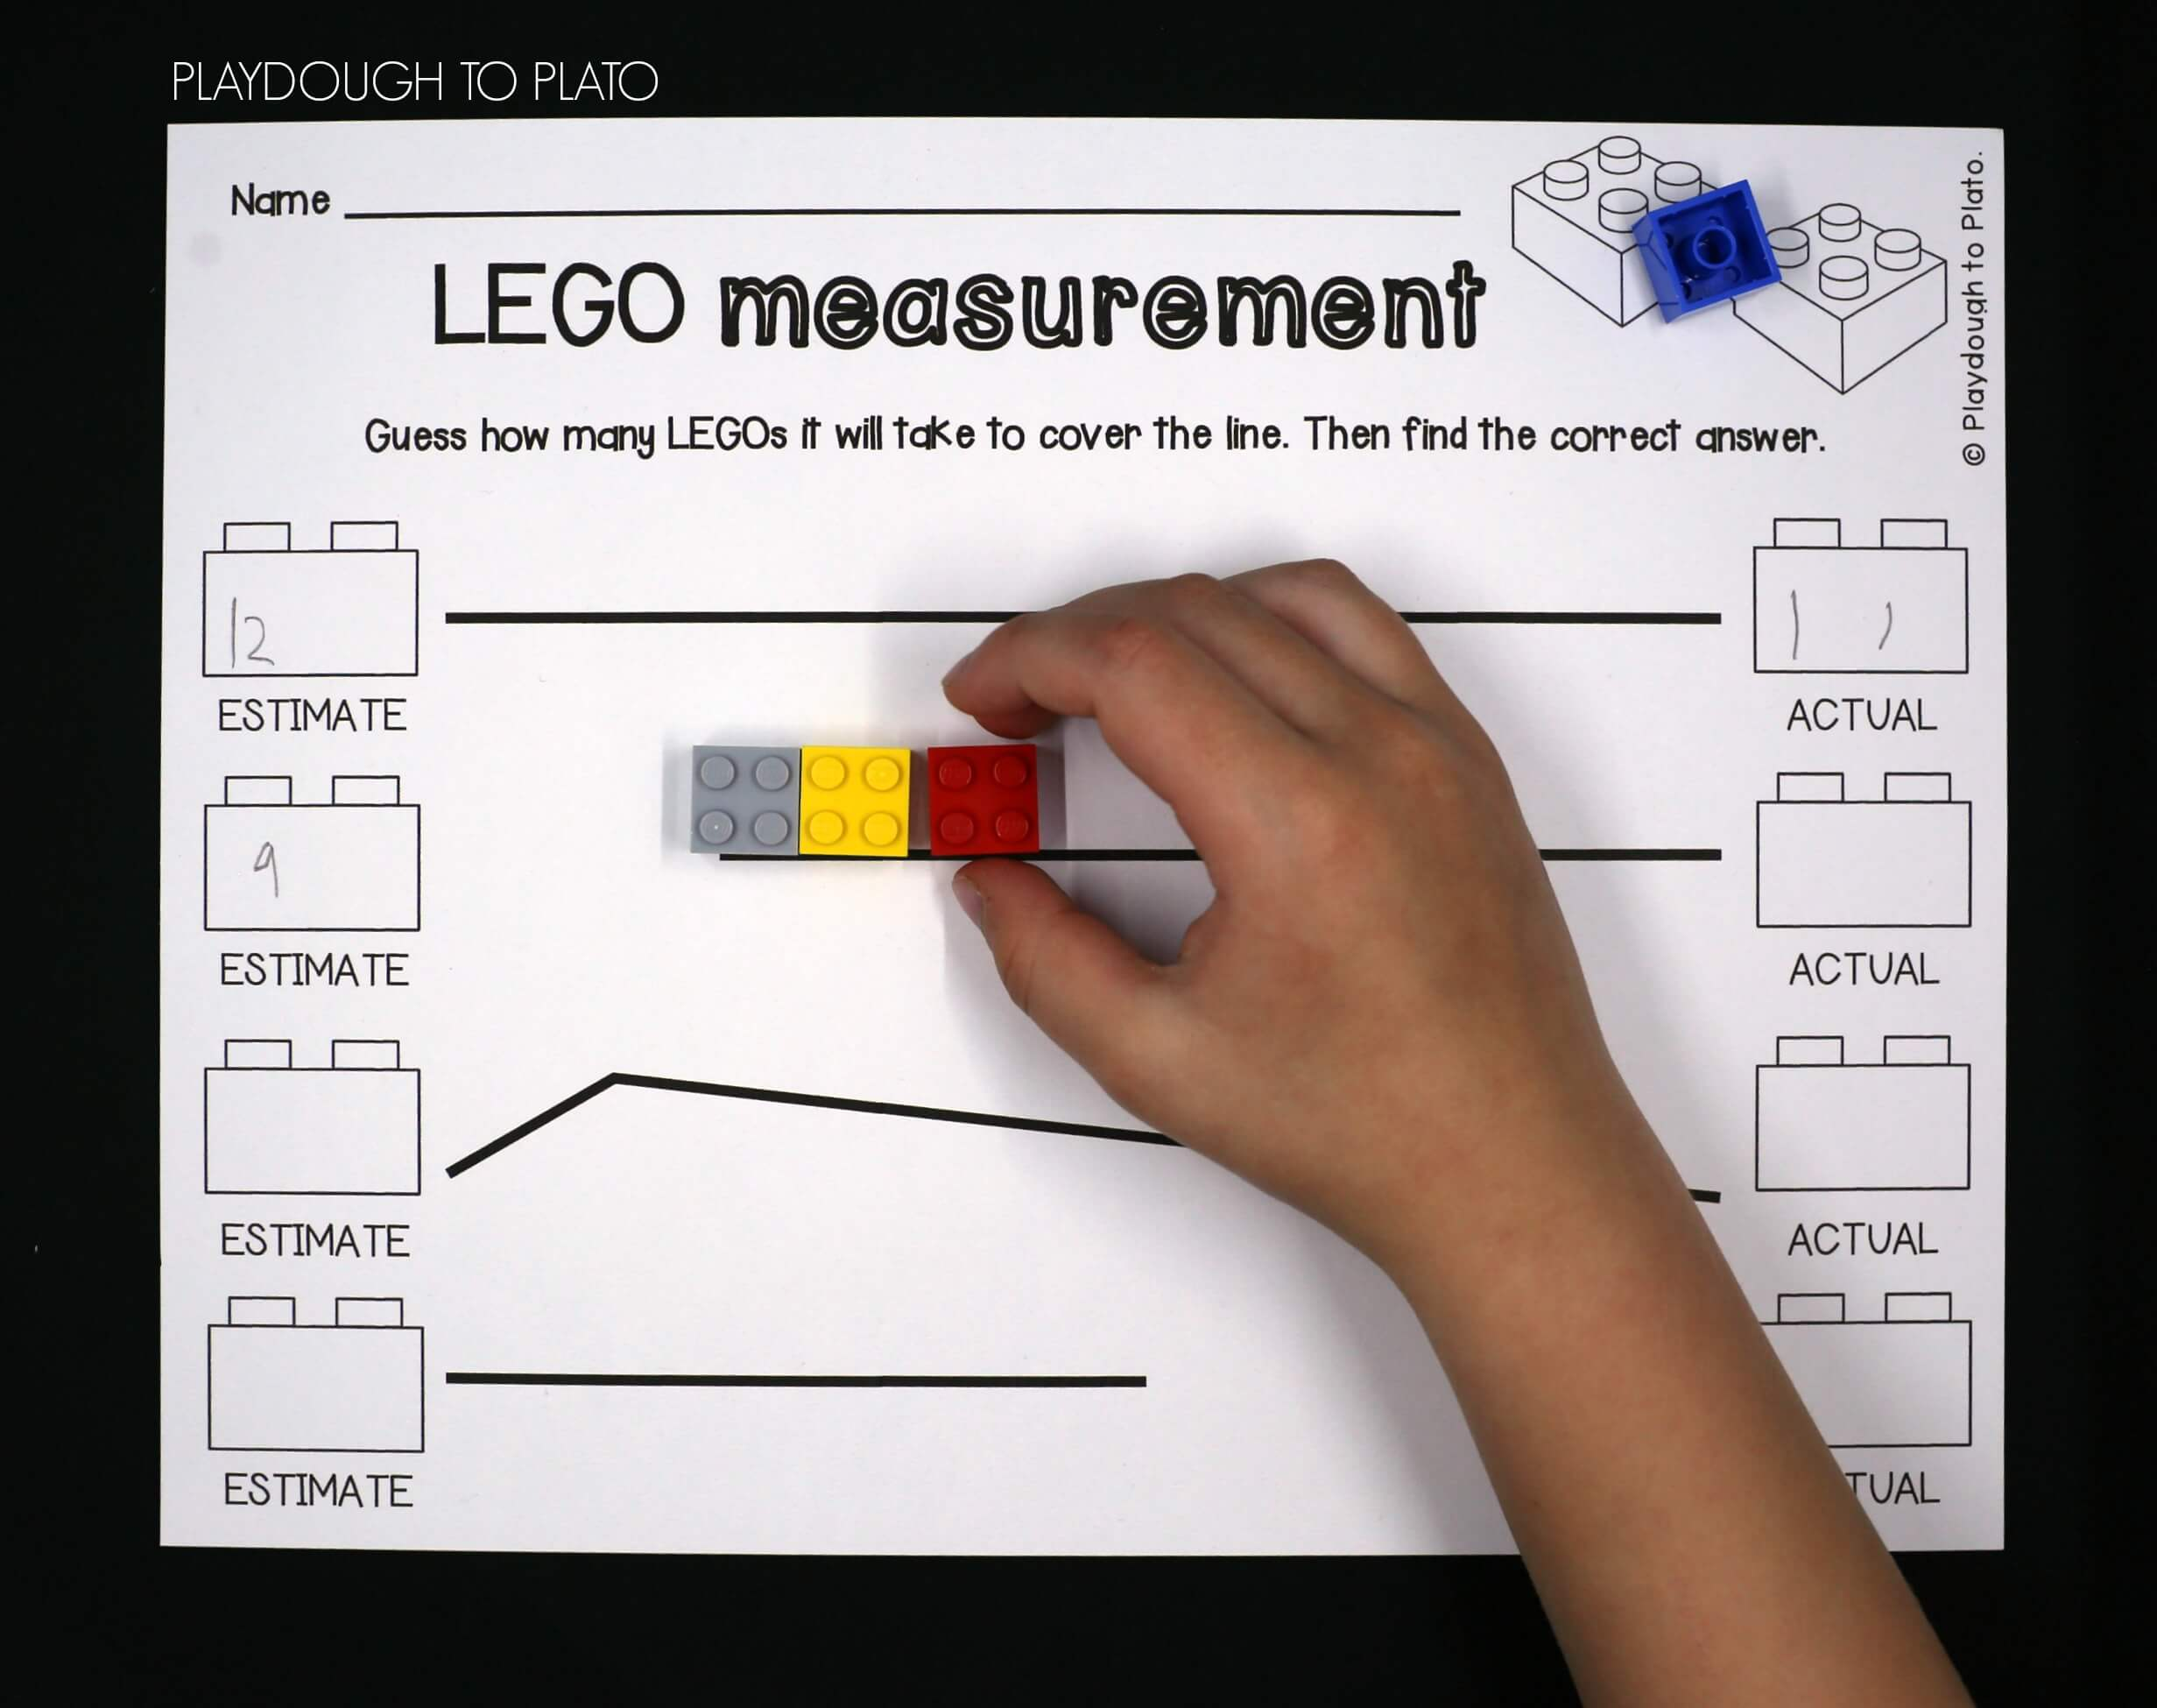 LEGO Measurement - Playdough To Plato